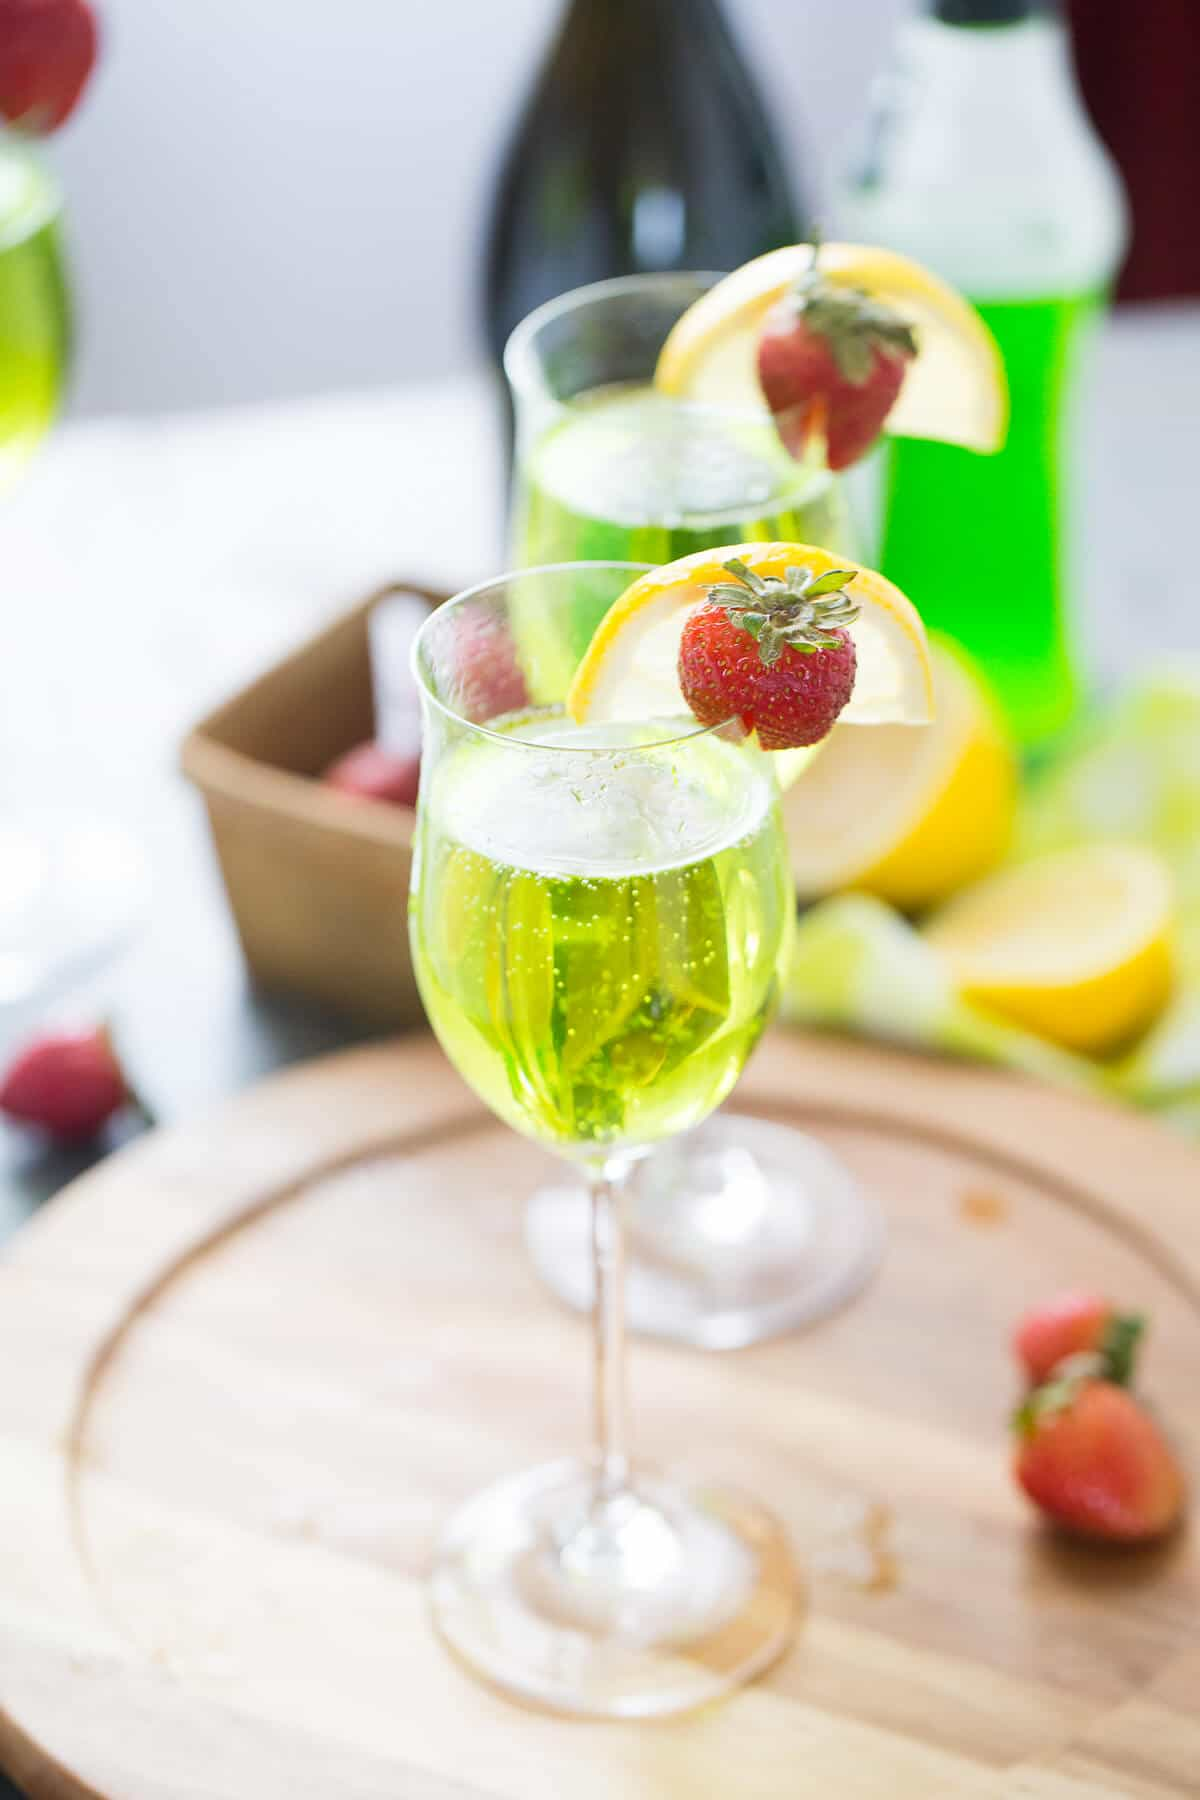 This bubbly Irish cocktail is so much fun! Prosecco and Midori make an unforgettable combination!